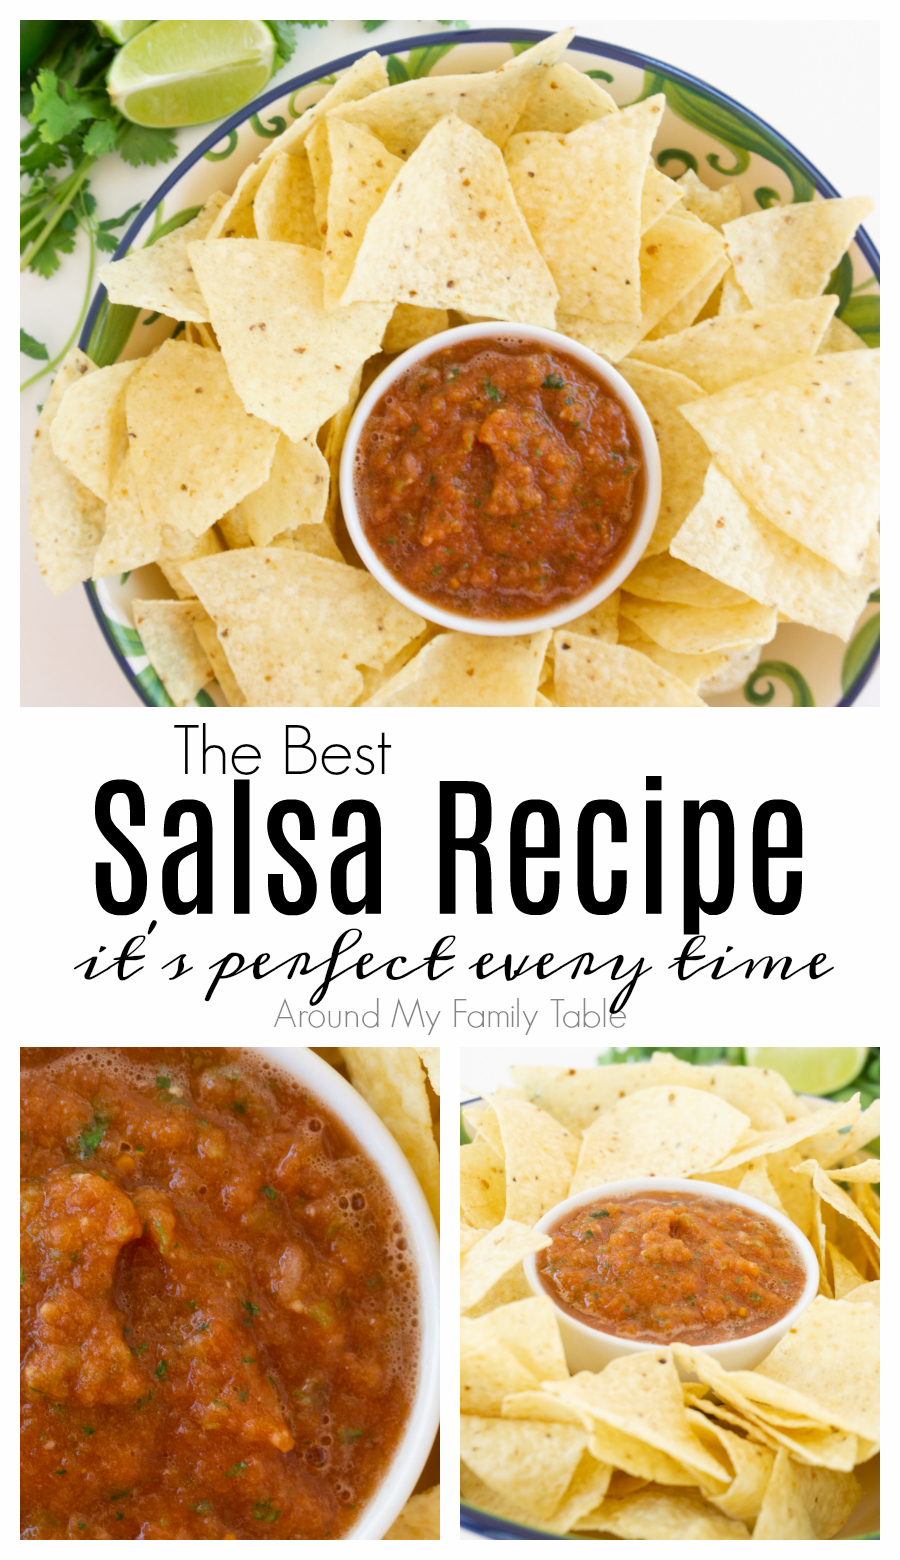 Best Salsa Recipe- perfect every time! via @slingmama